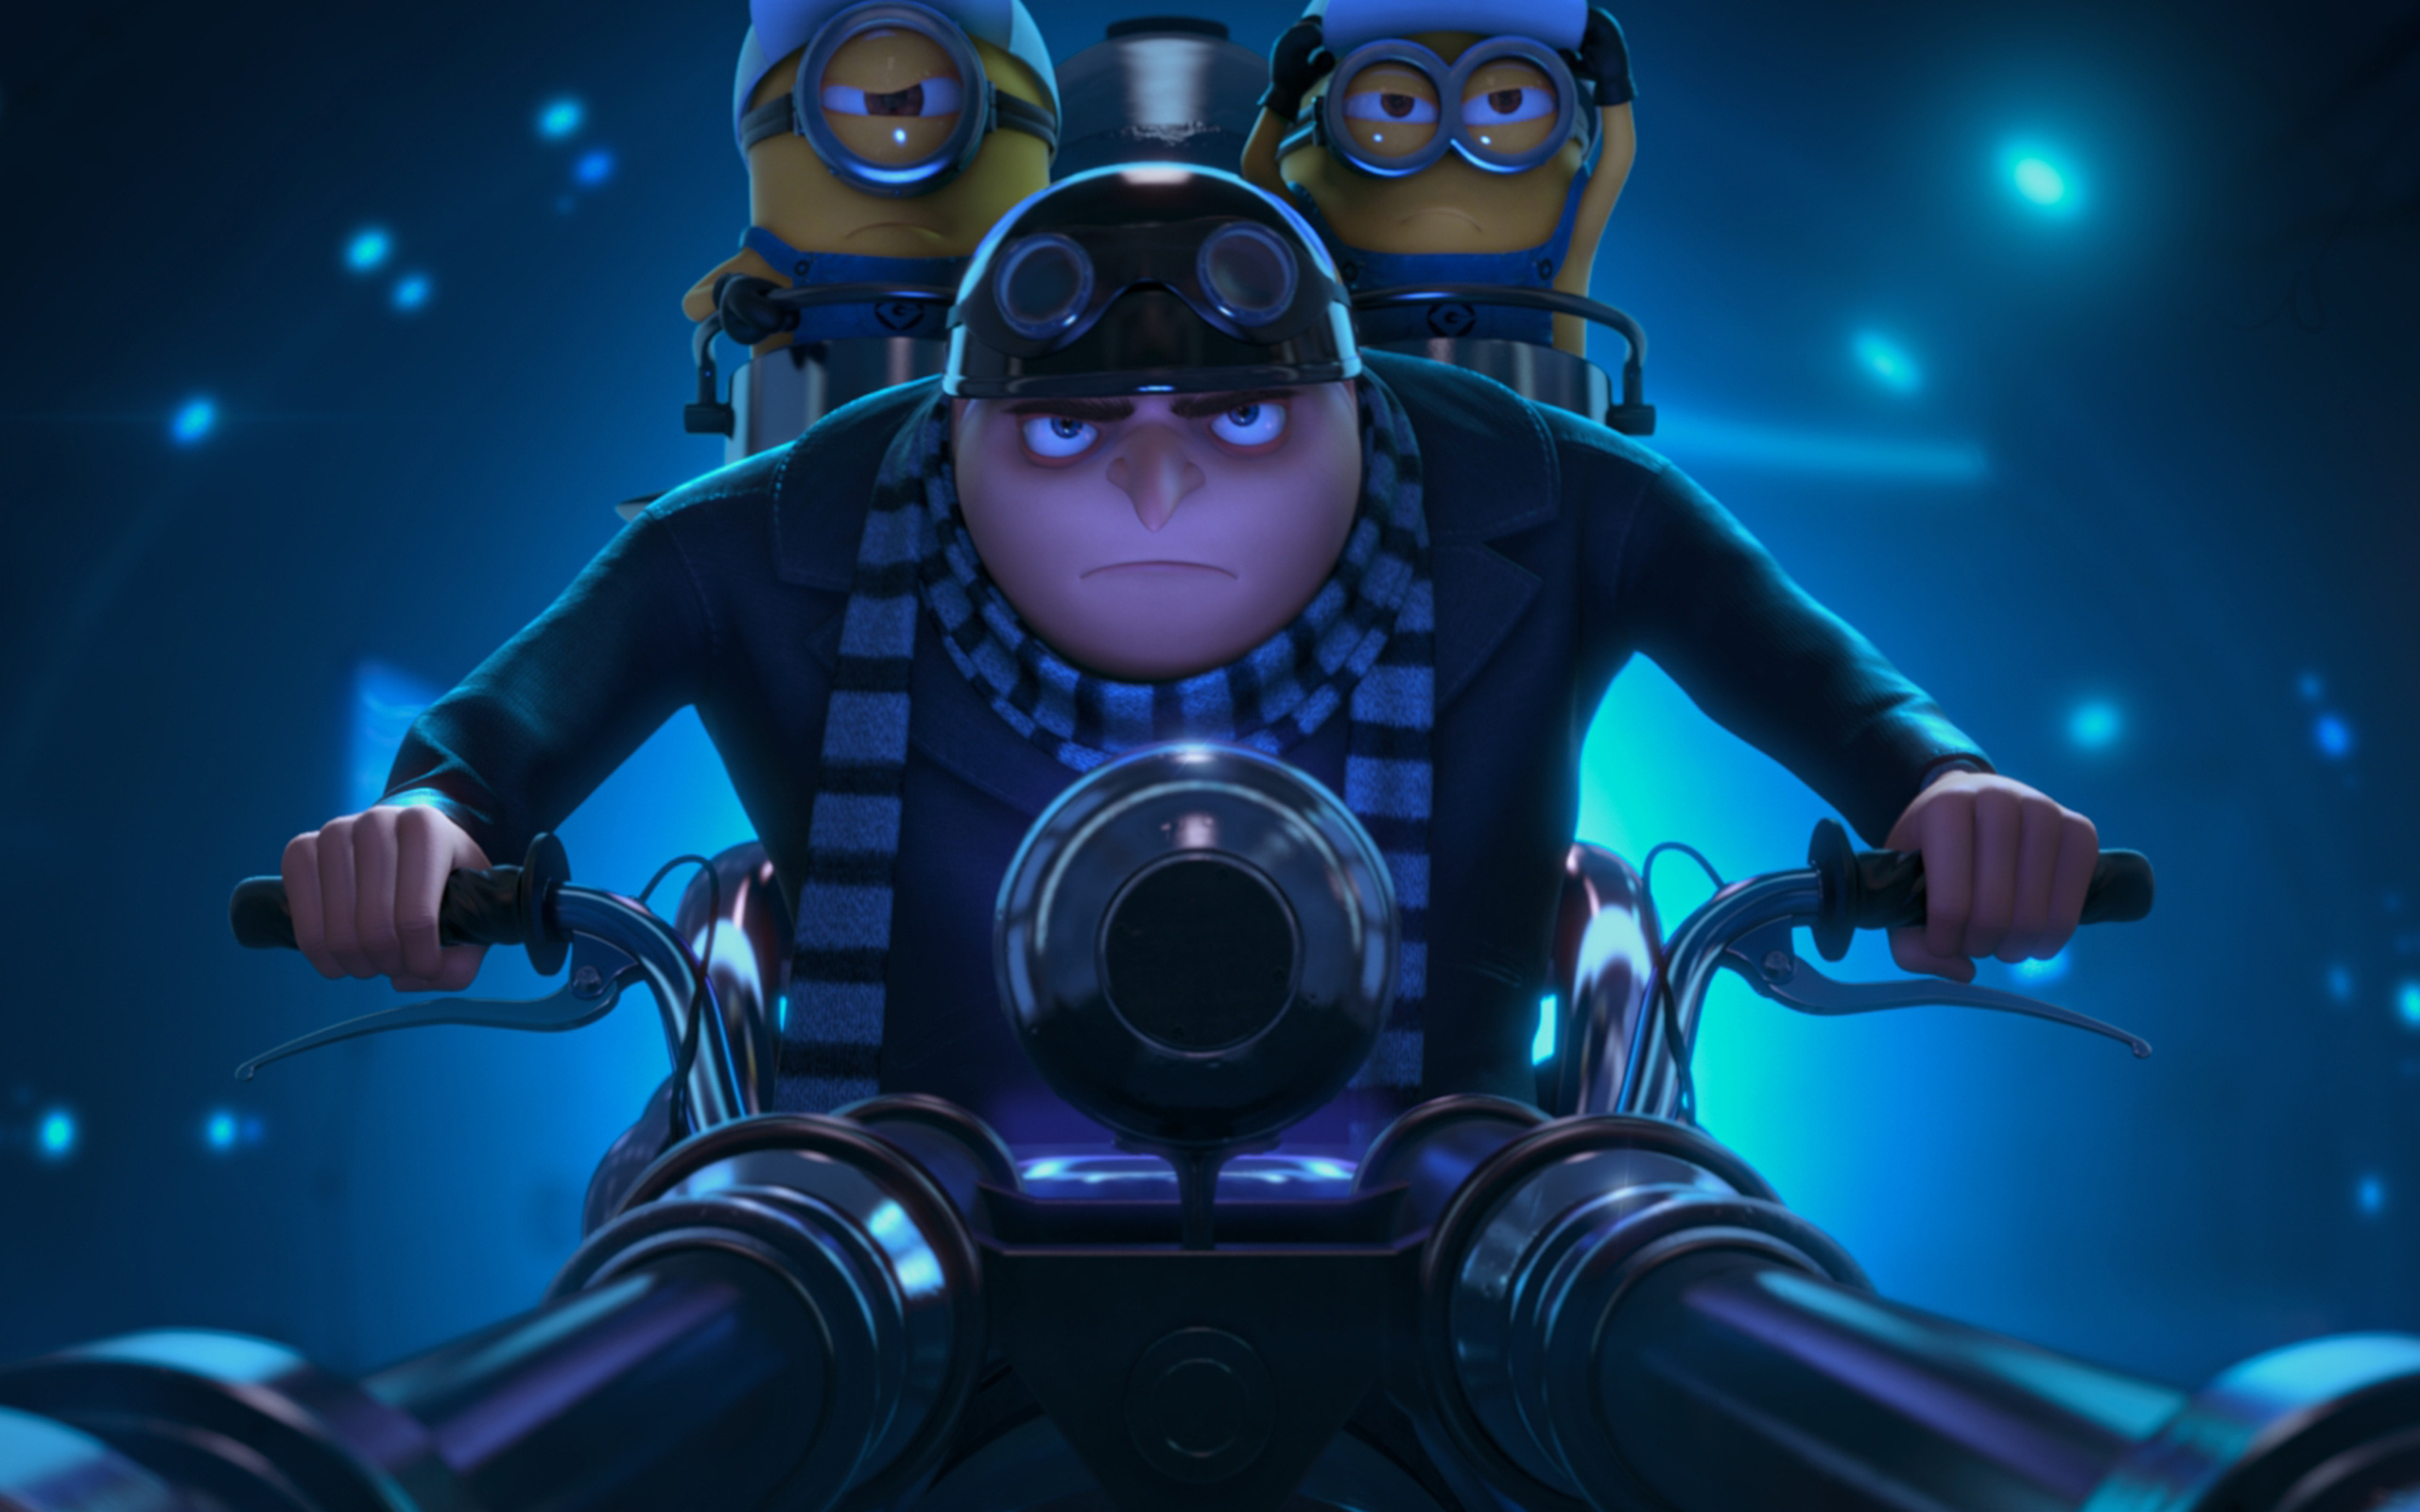 Despicable Me 2 New Hd Wallpapers All Hd Wallpapers